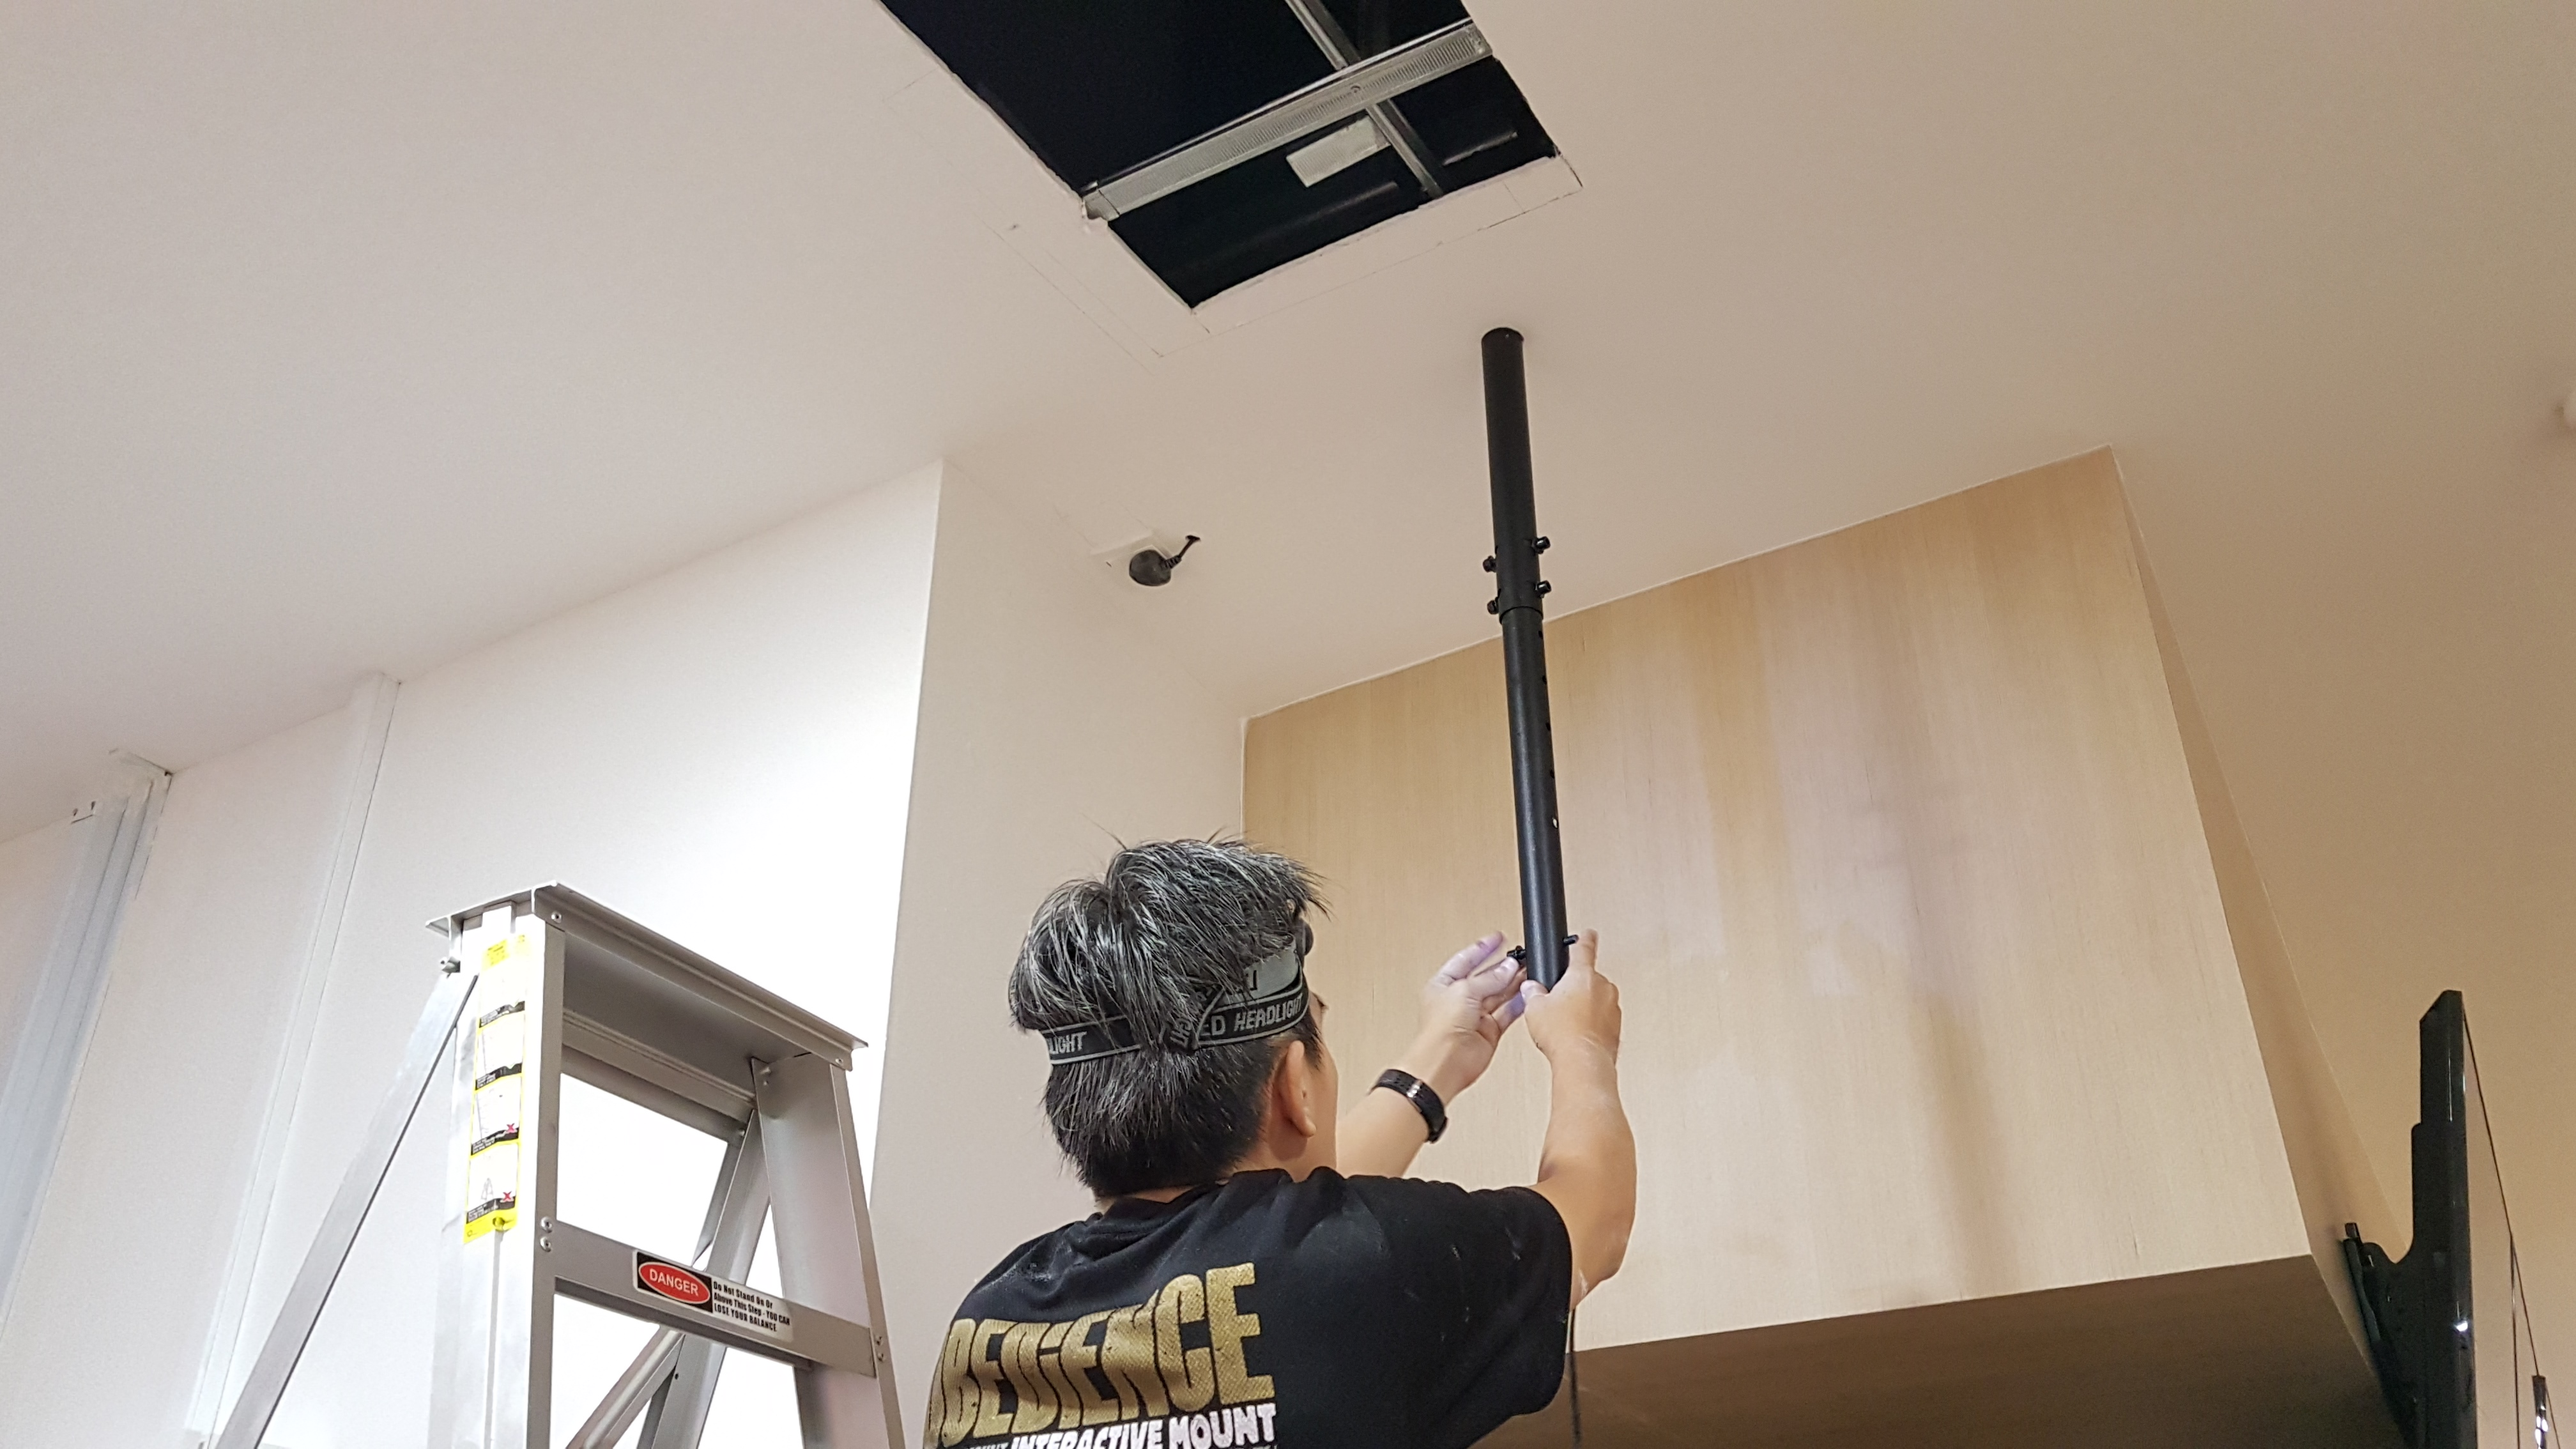 mounted mount brackets outside coppell melbourne pranksenders install ceilings ceiling tv